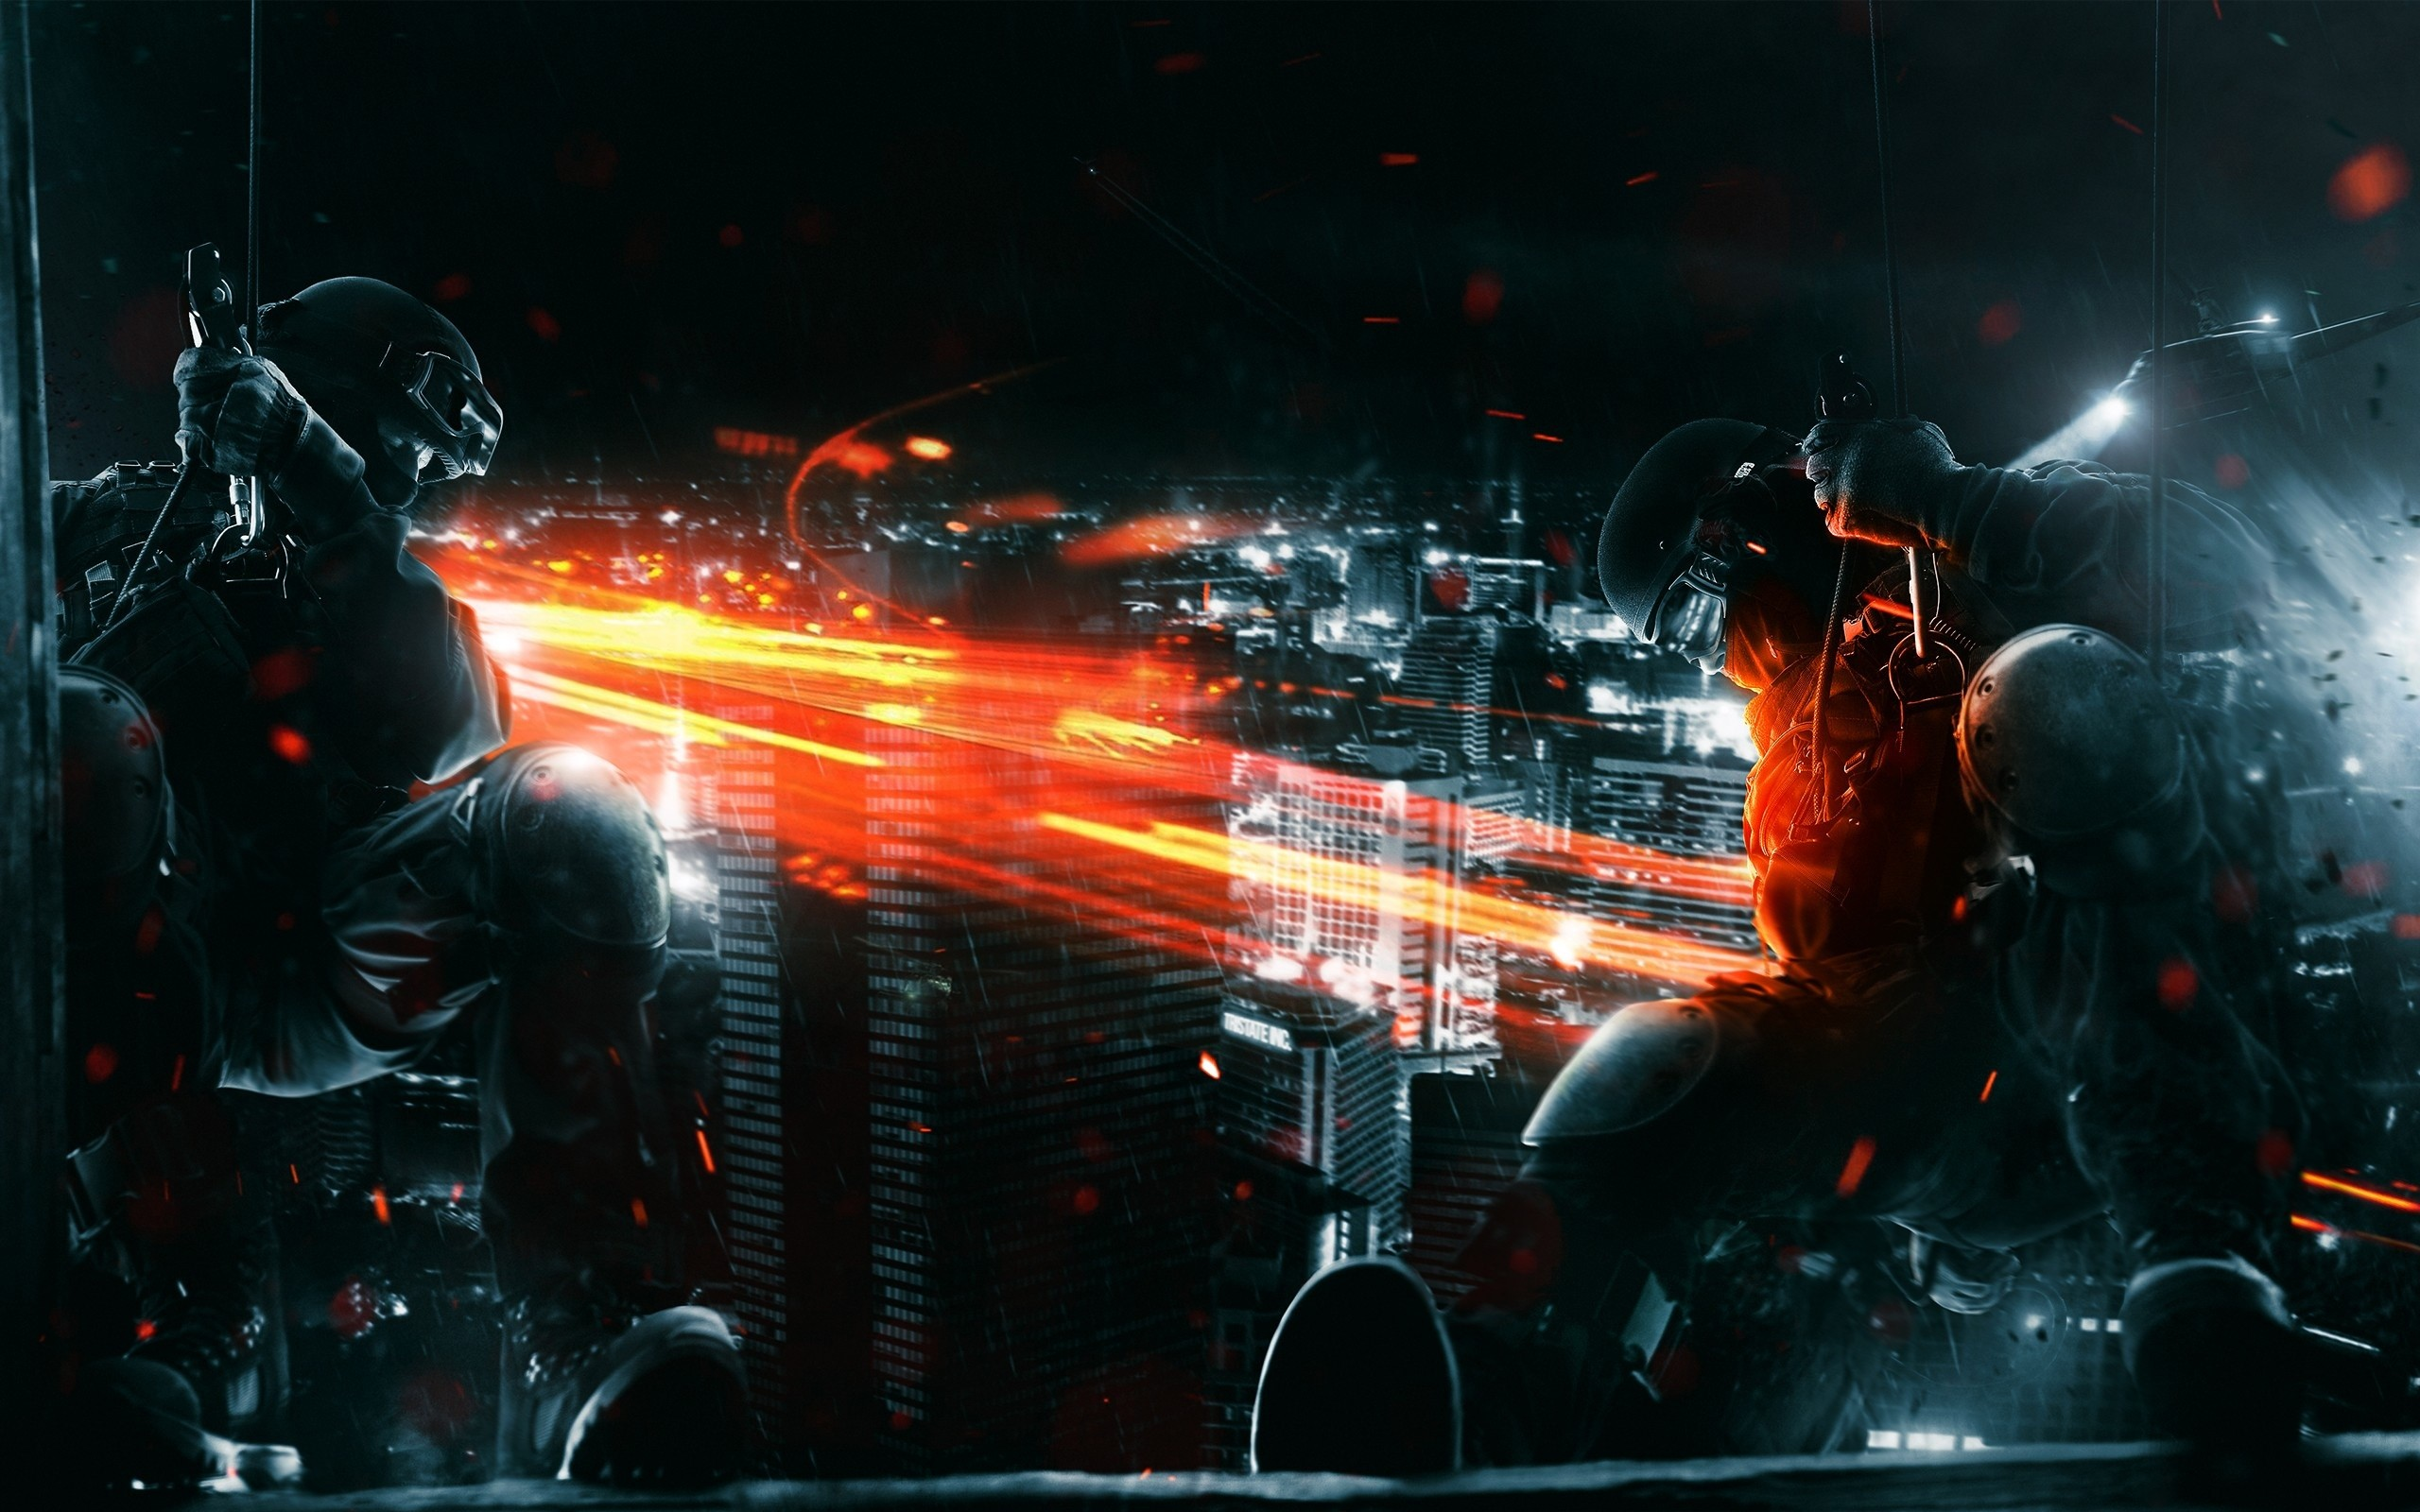 Wallpaper Battlefield 3 Spec Ops Images